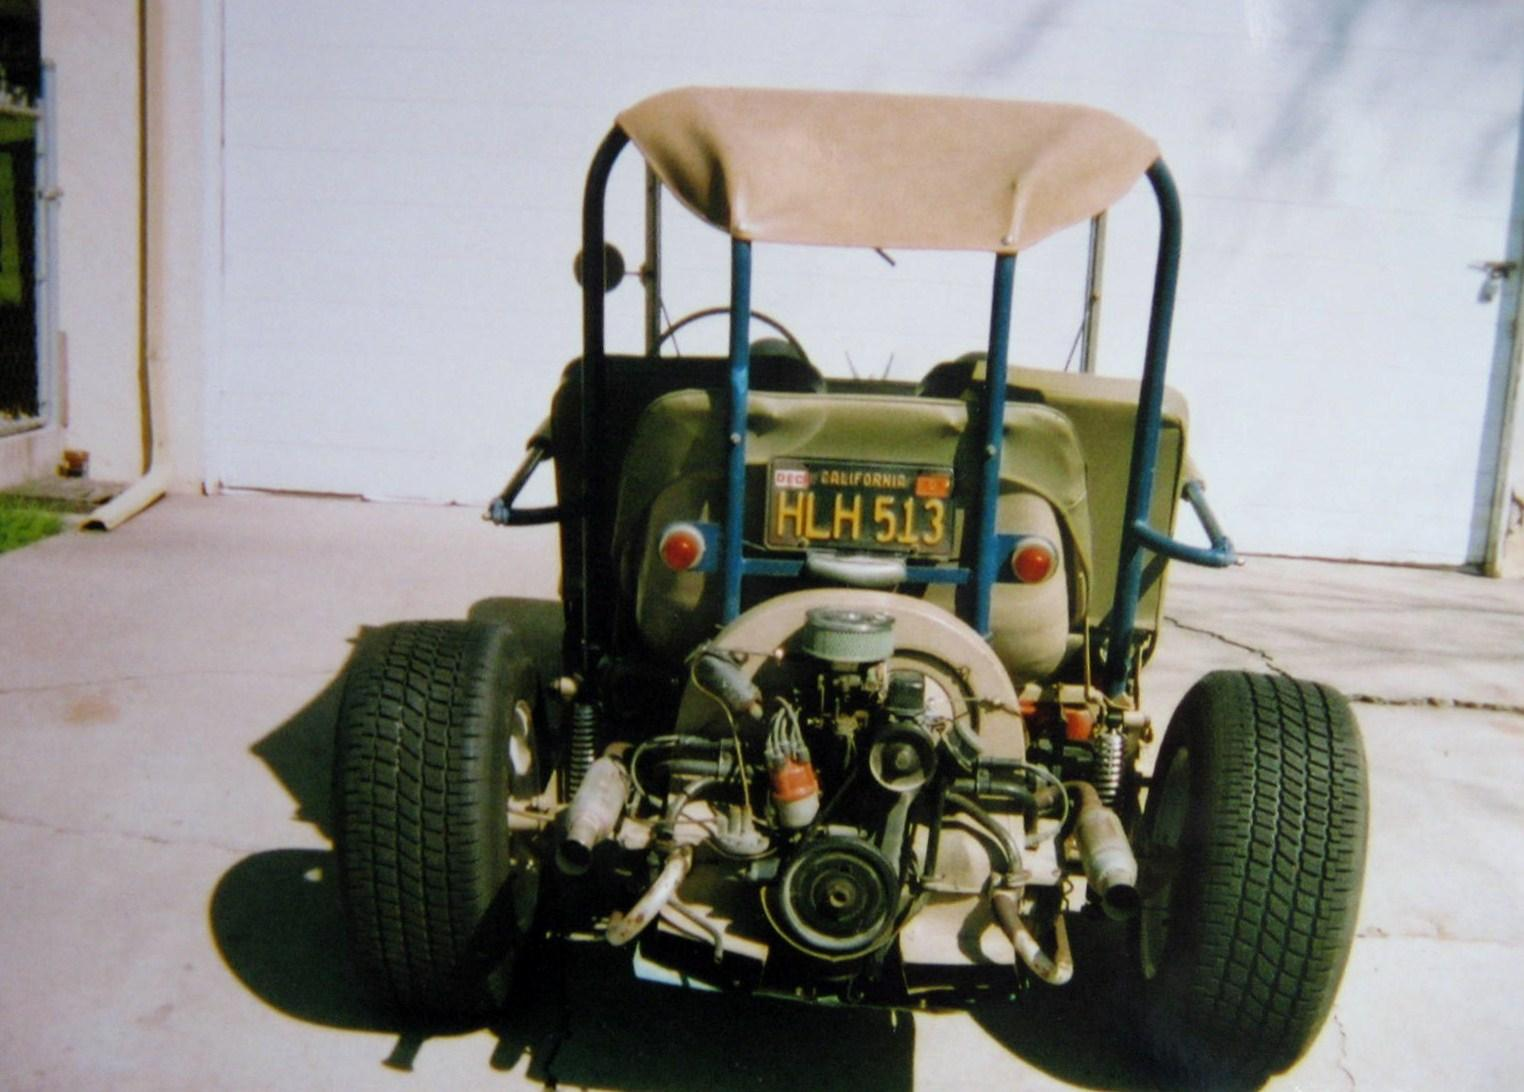 1957 Beetle modified to Pismo Cruiser